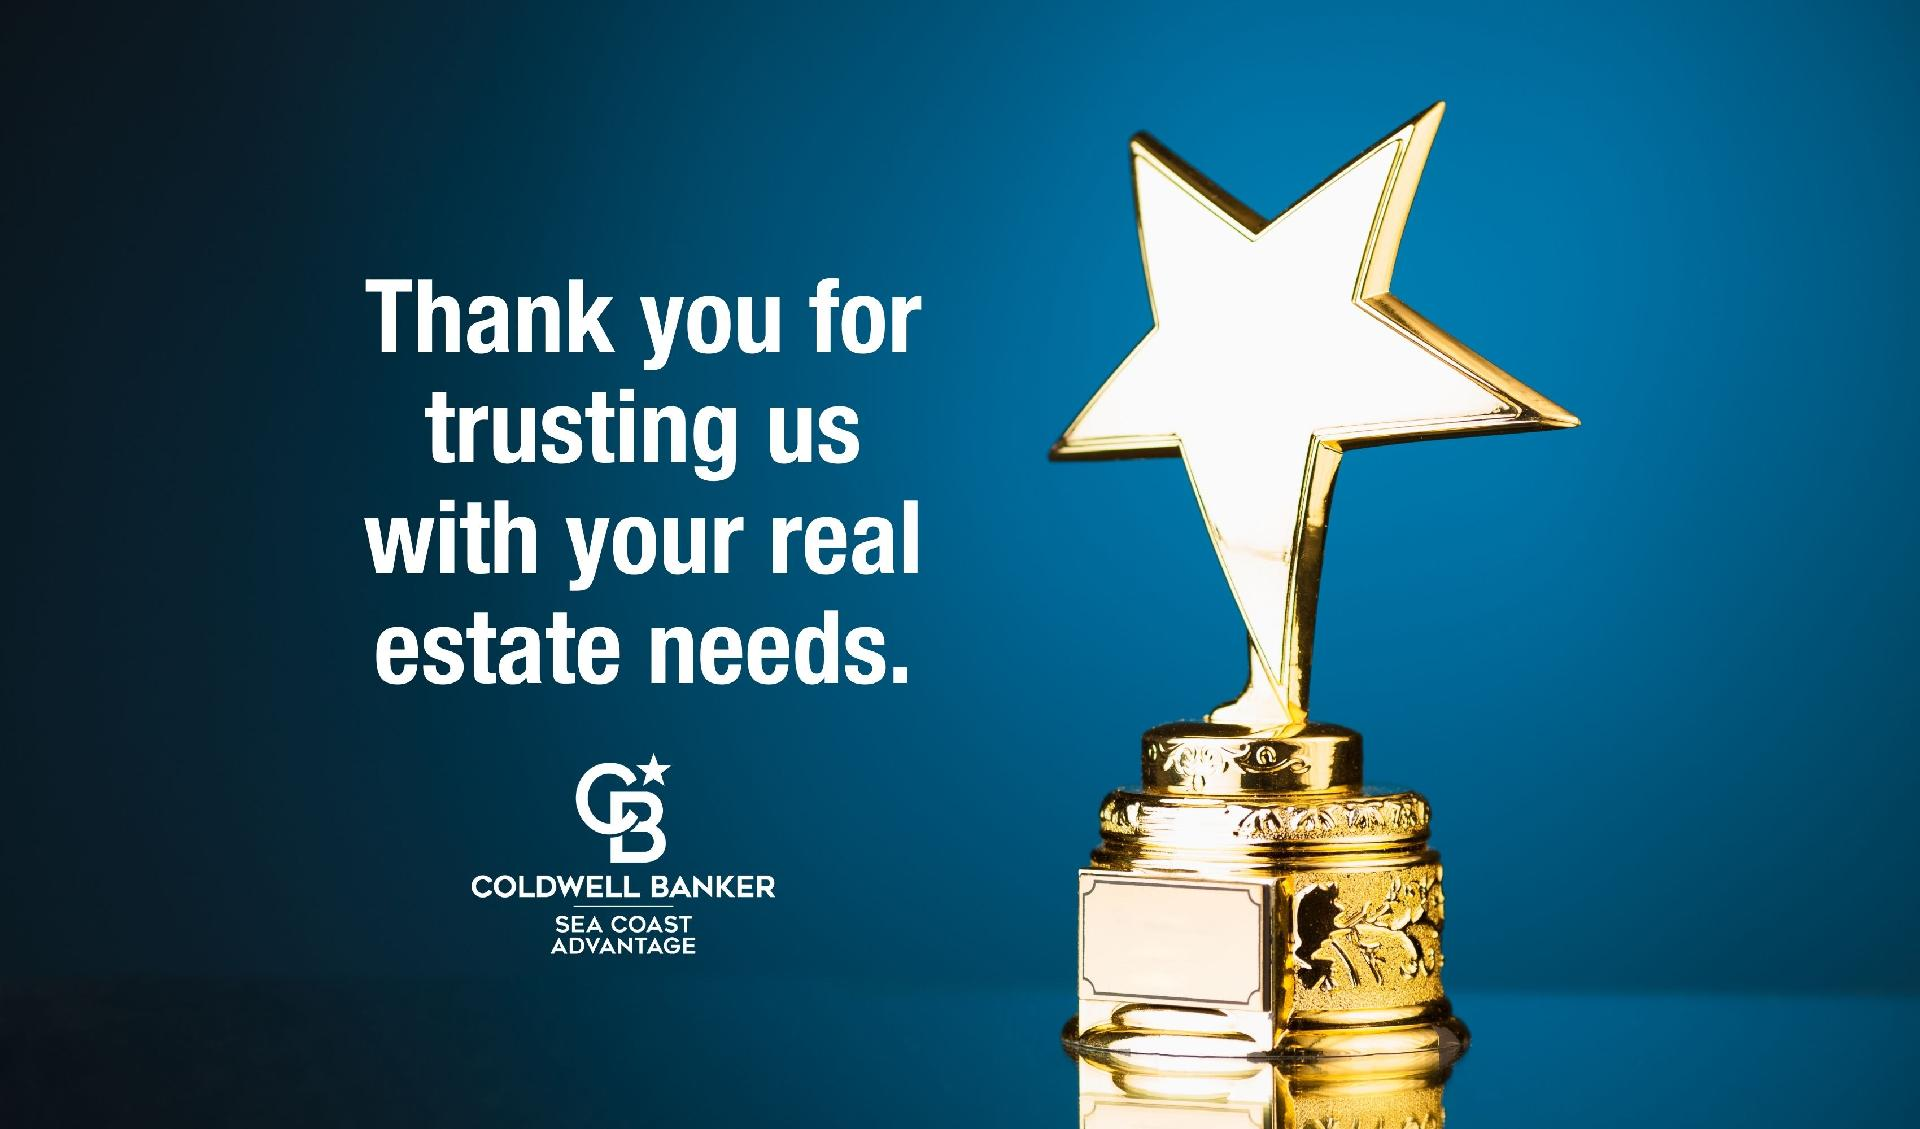 COLDWELL BANKER SEA COAST ADVANTAGE HONORED BY RISMEDIA Main Photo